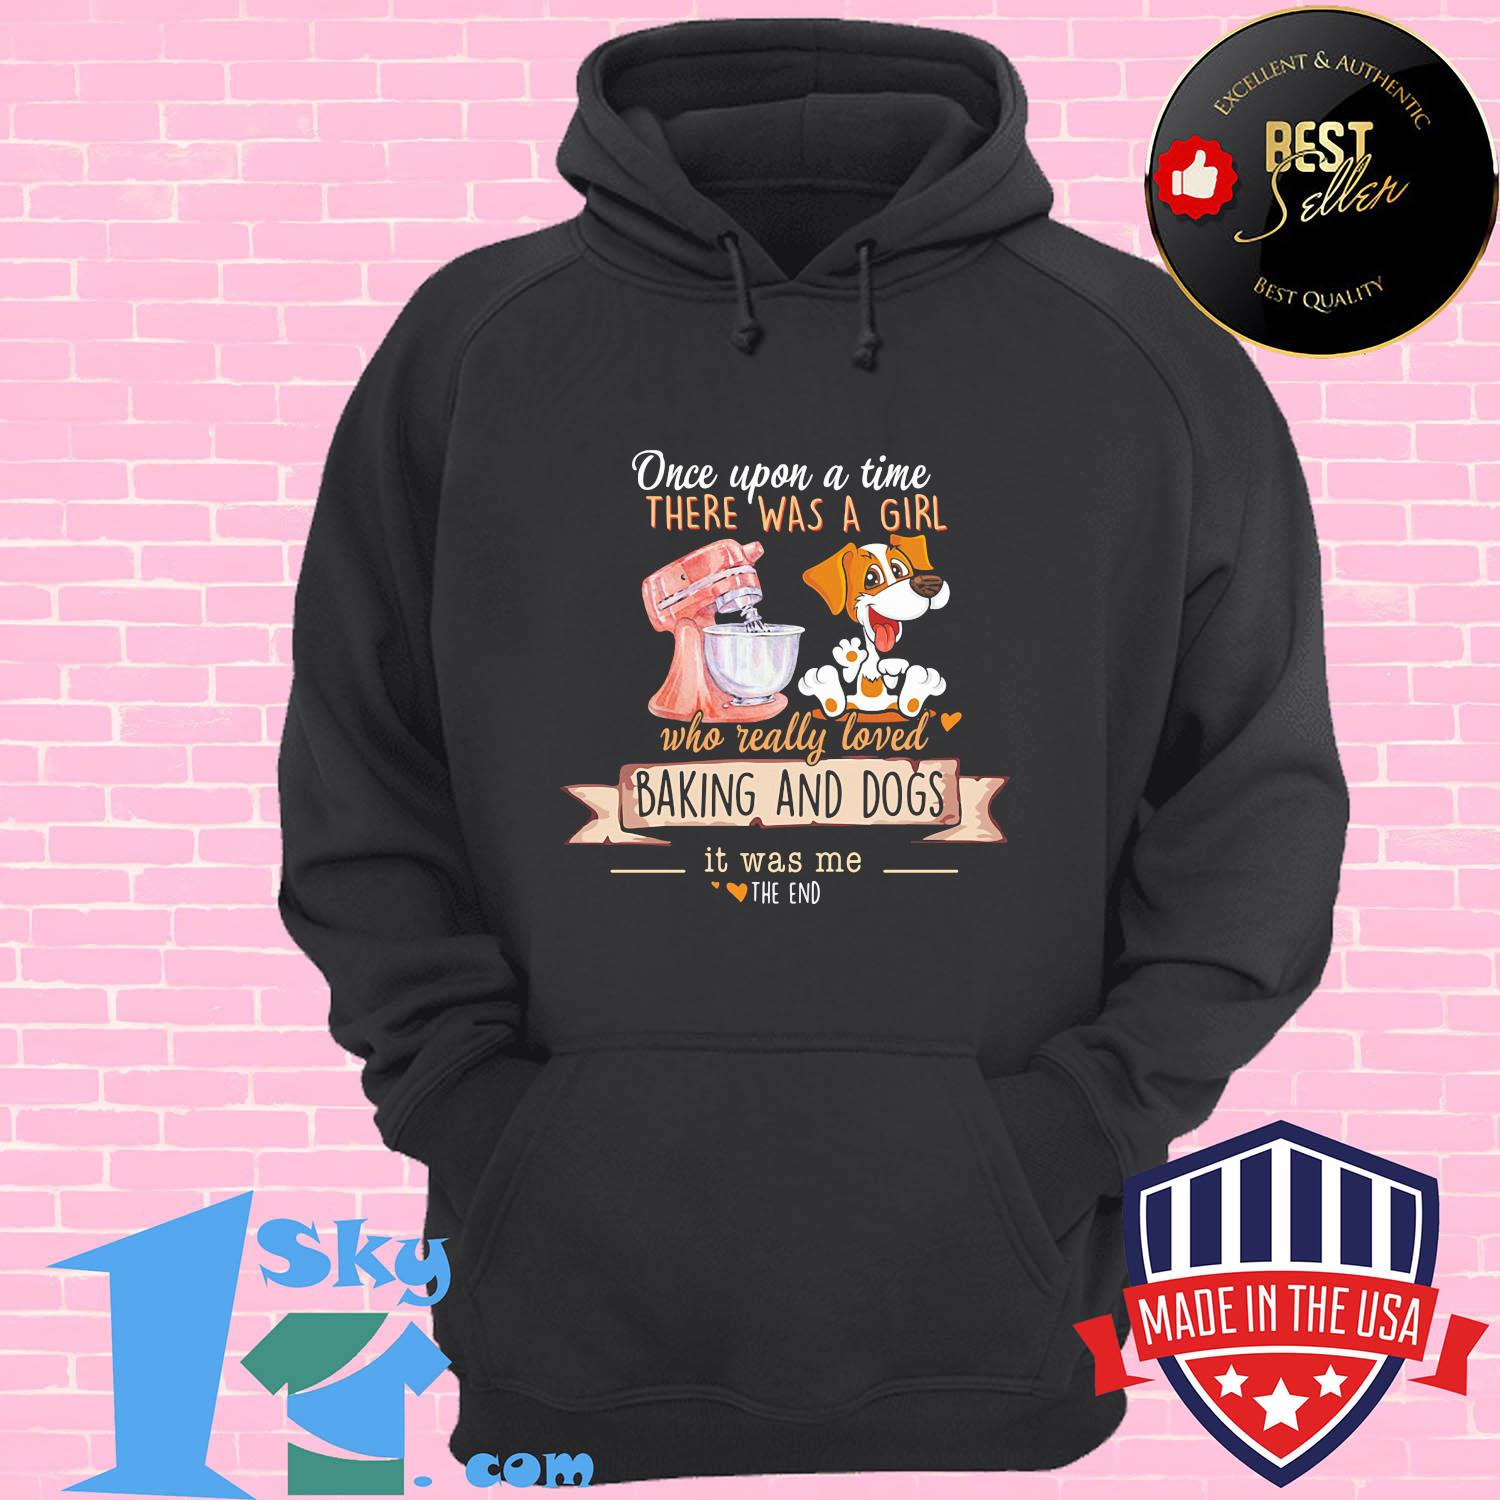 Once upon a time there was a girl who really loved baking and dogs it was me shirt